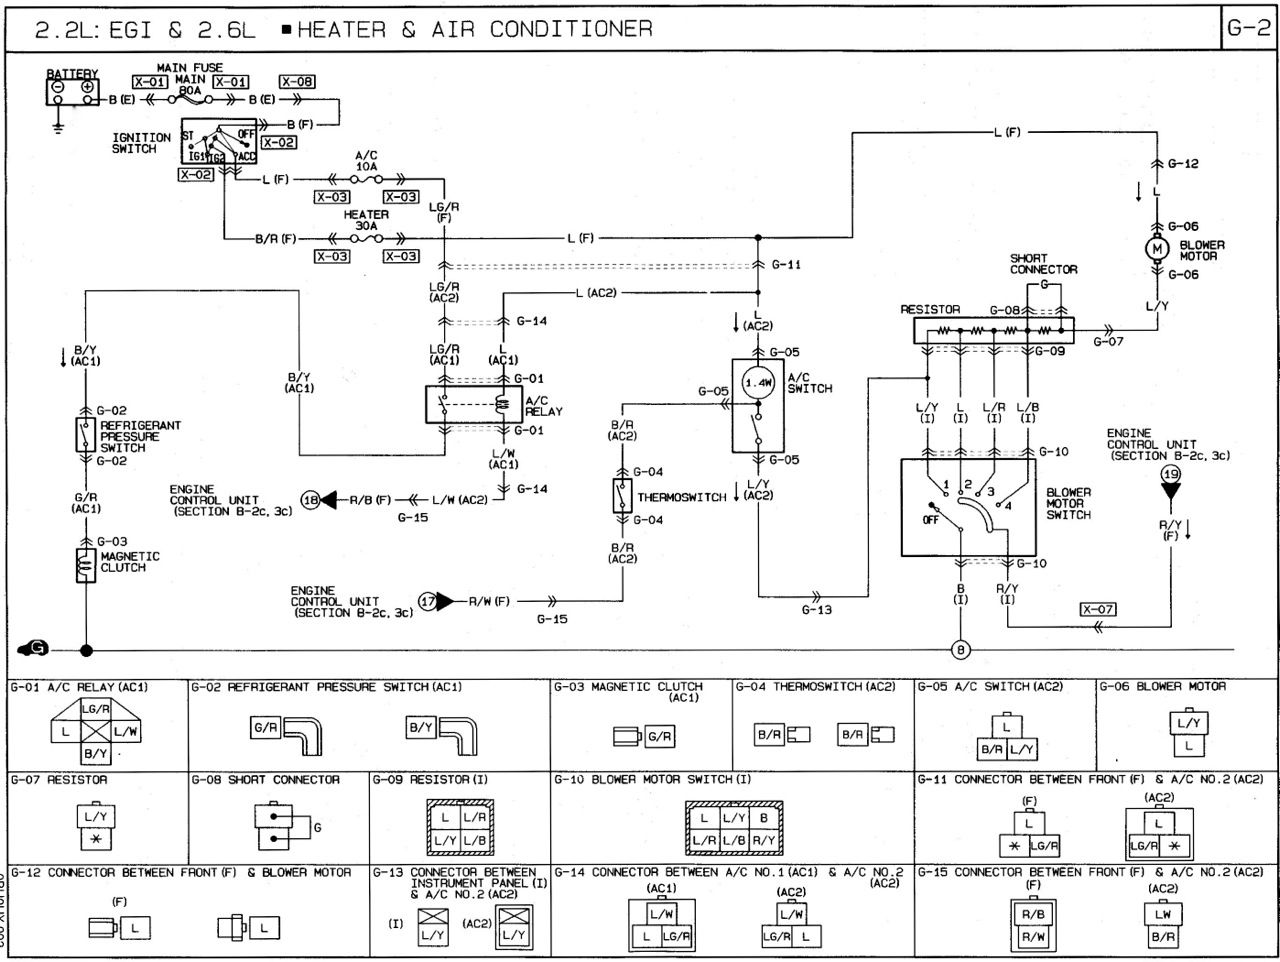 1991 Mazda B2600i Engine Control Wiring Diagram In 2020